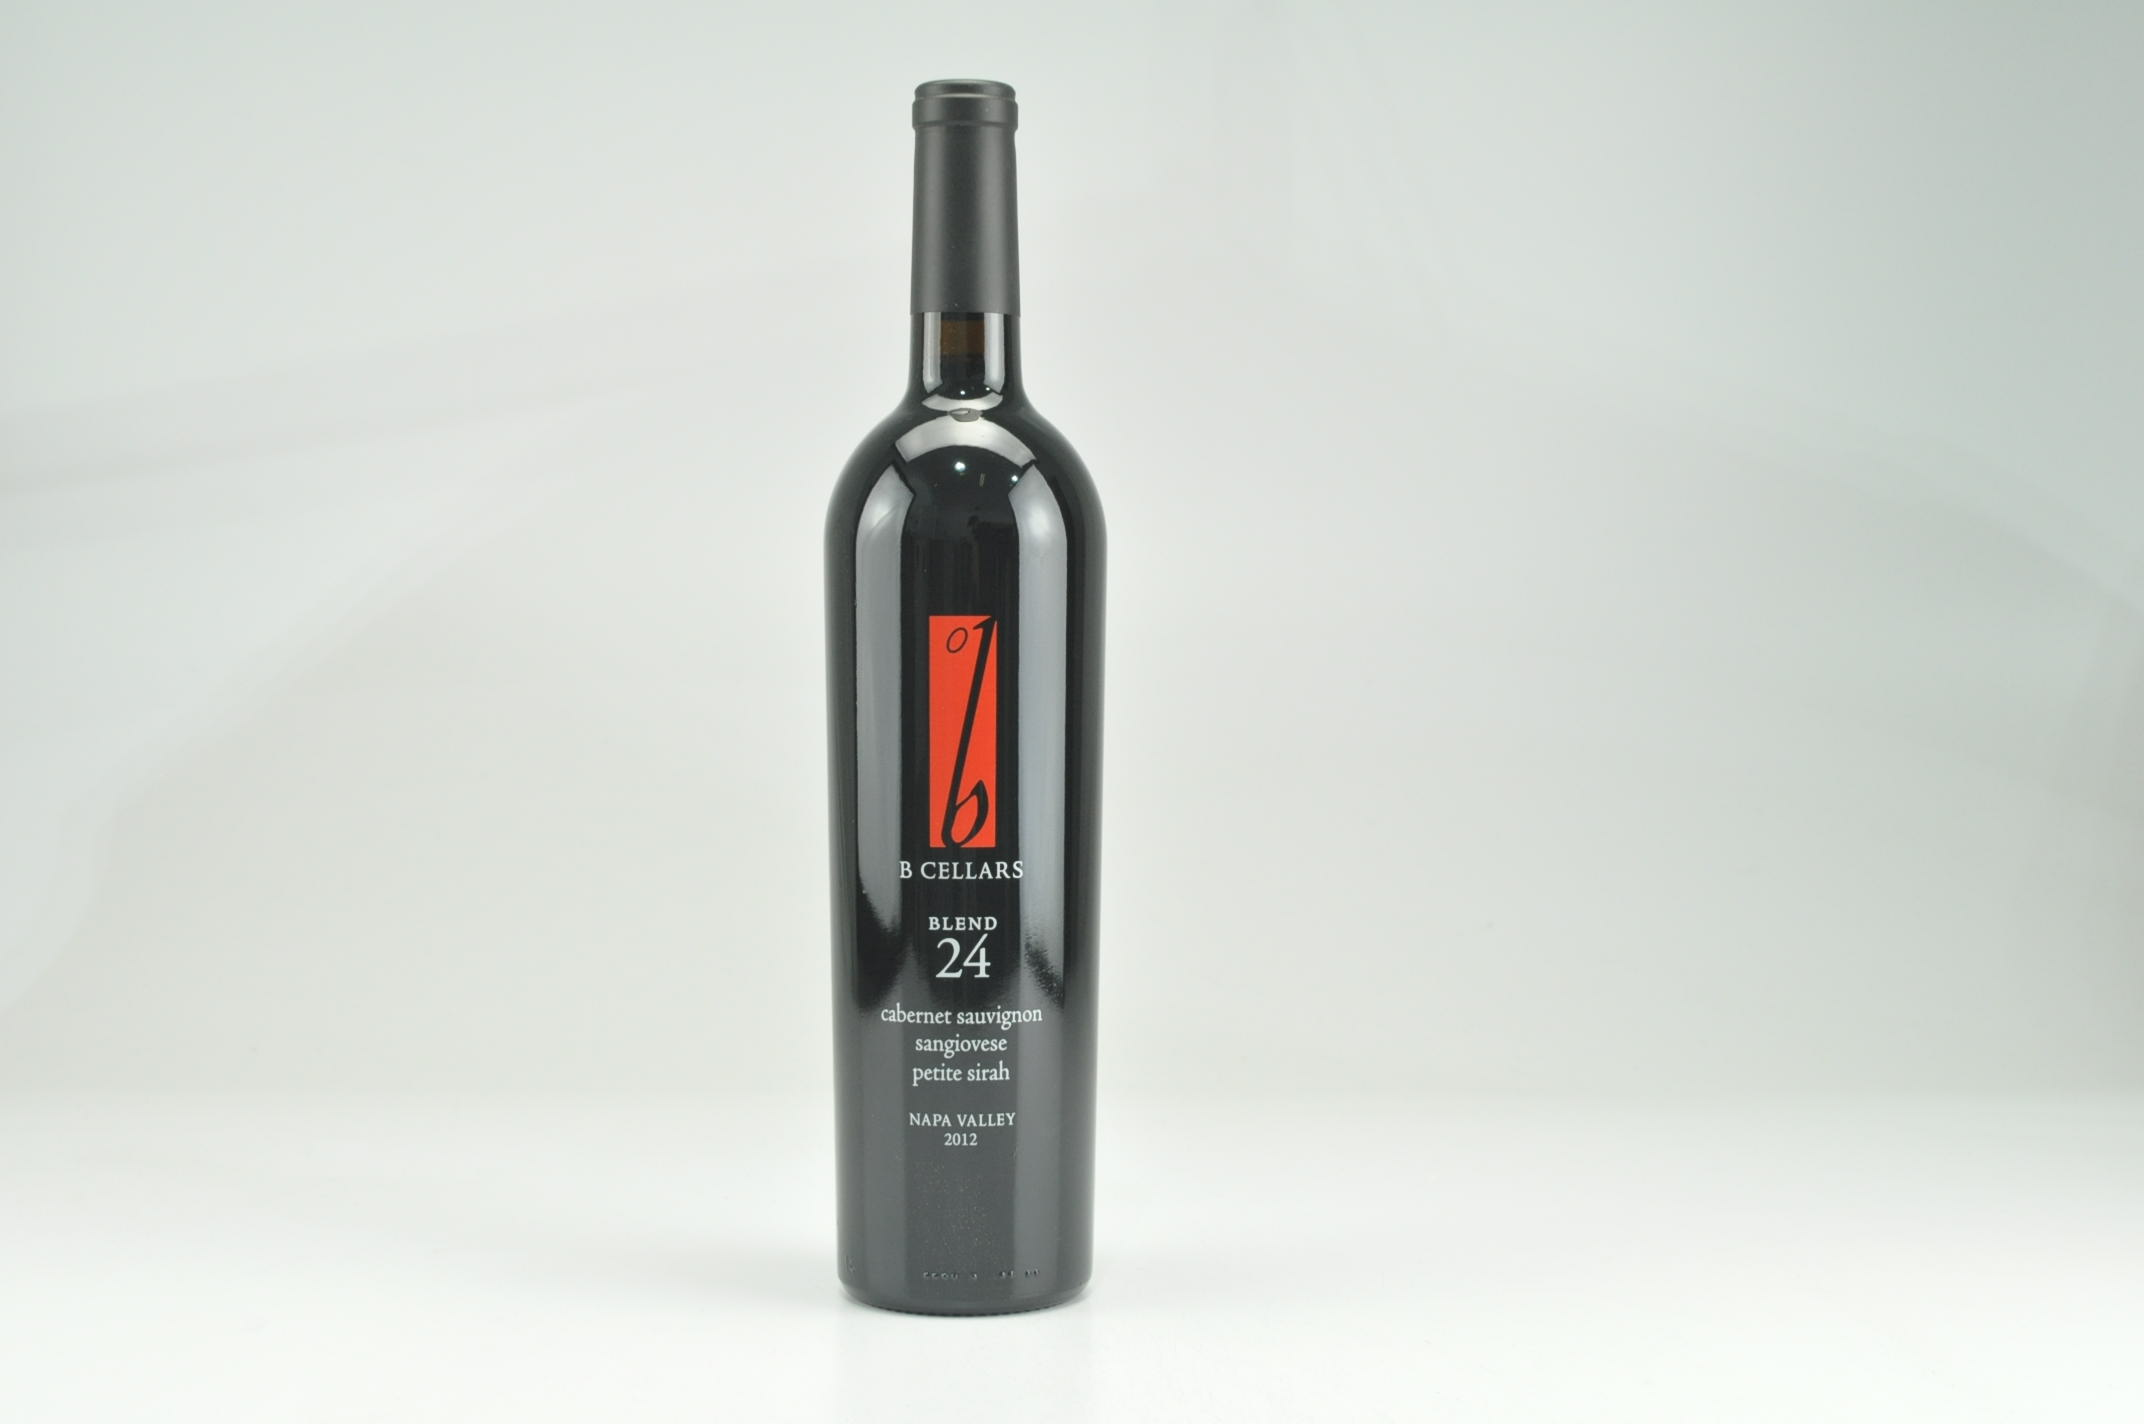 2012 B Cellars Blend 24, Napa Valley